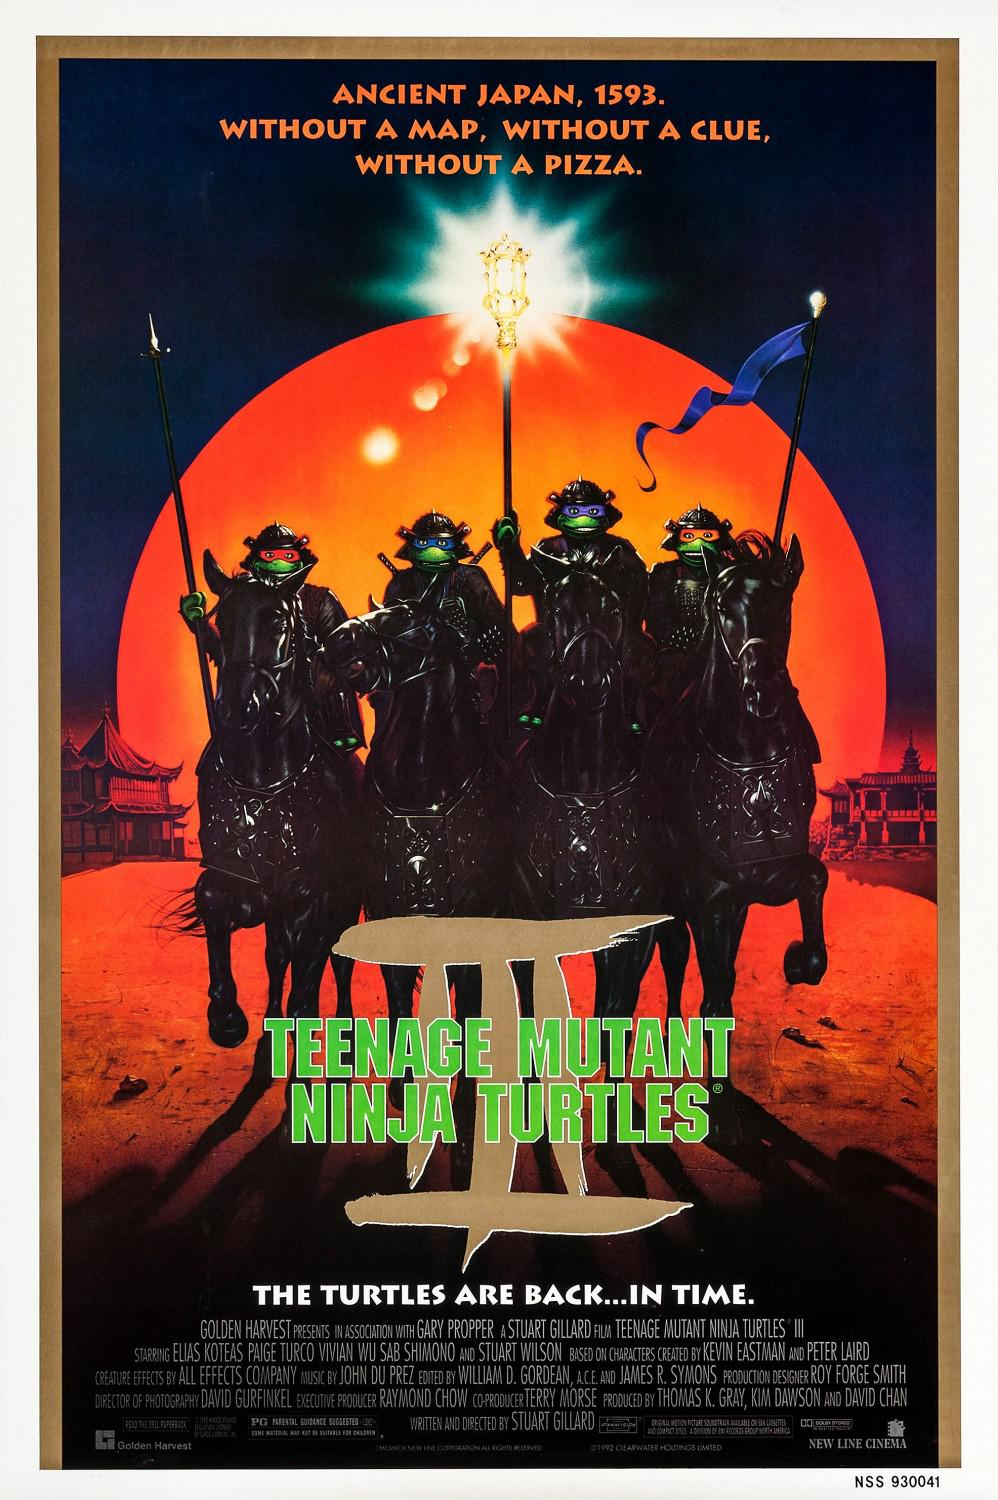 TMNT - Teenage Mutant Ninja Turtles - back in time  - poster